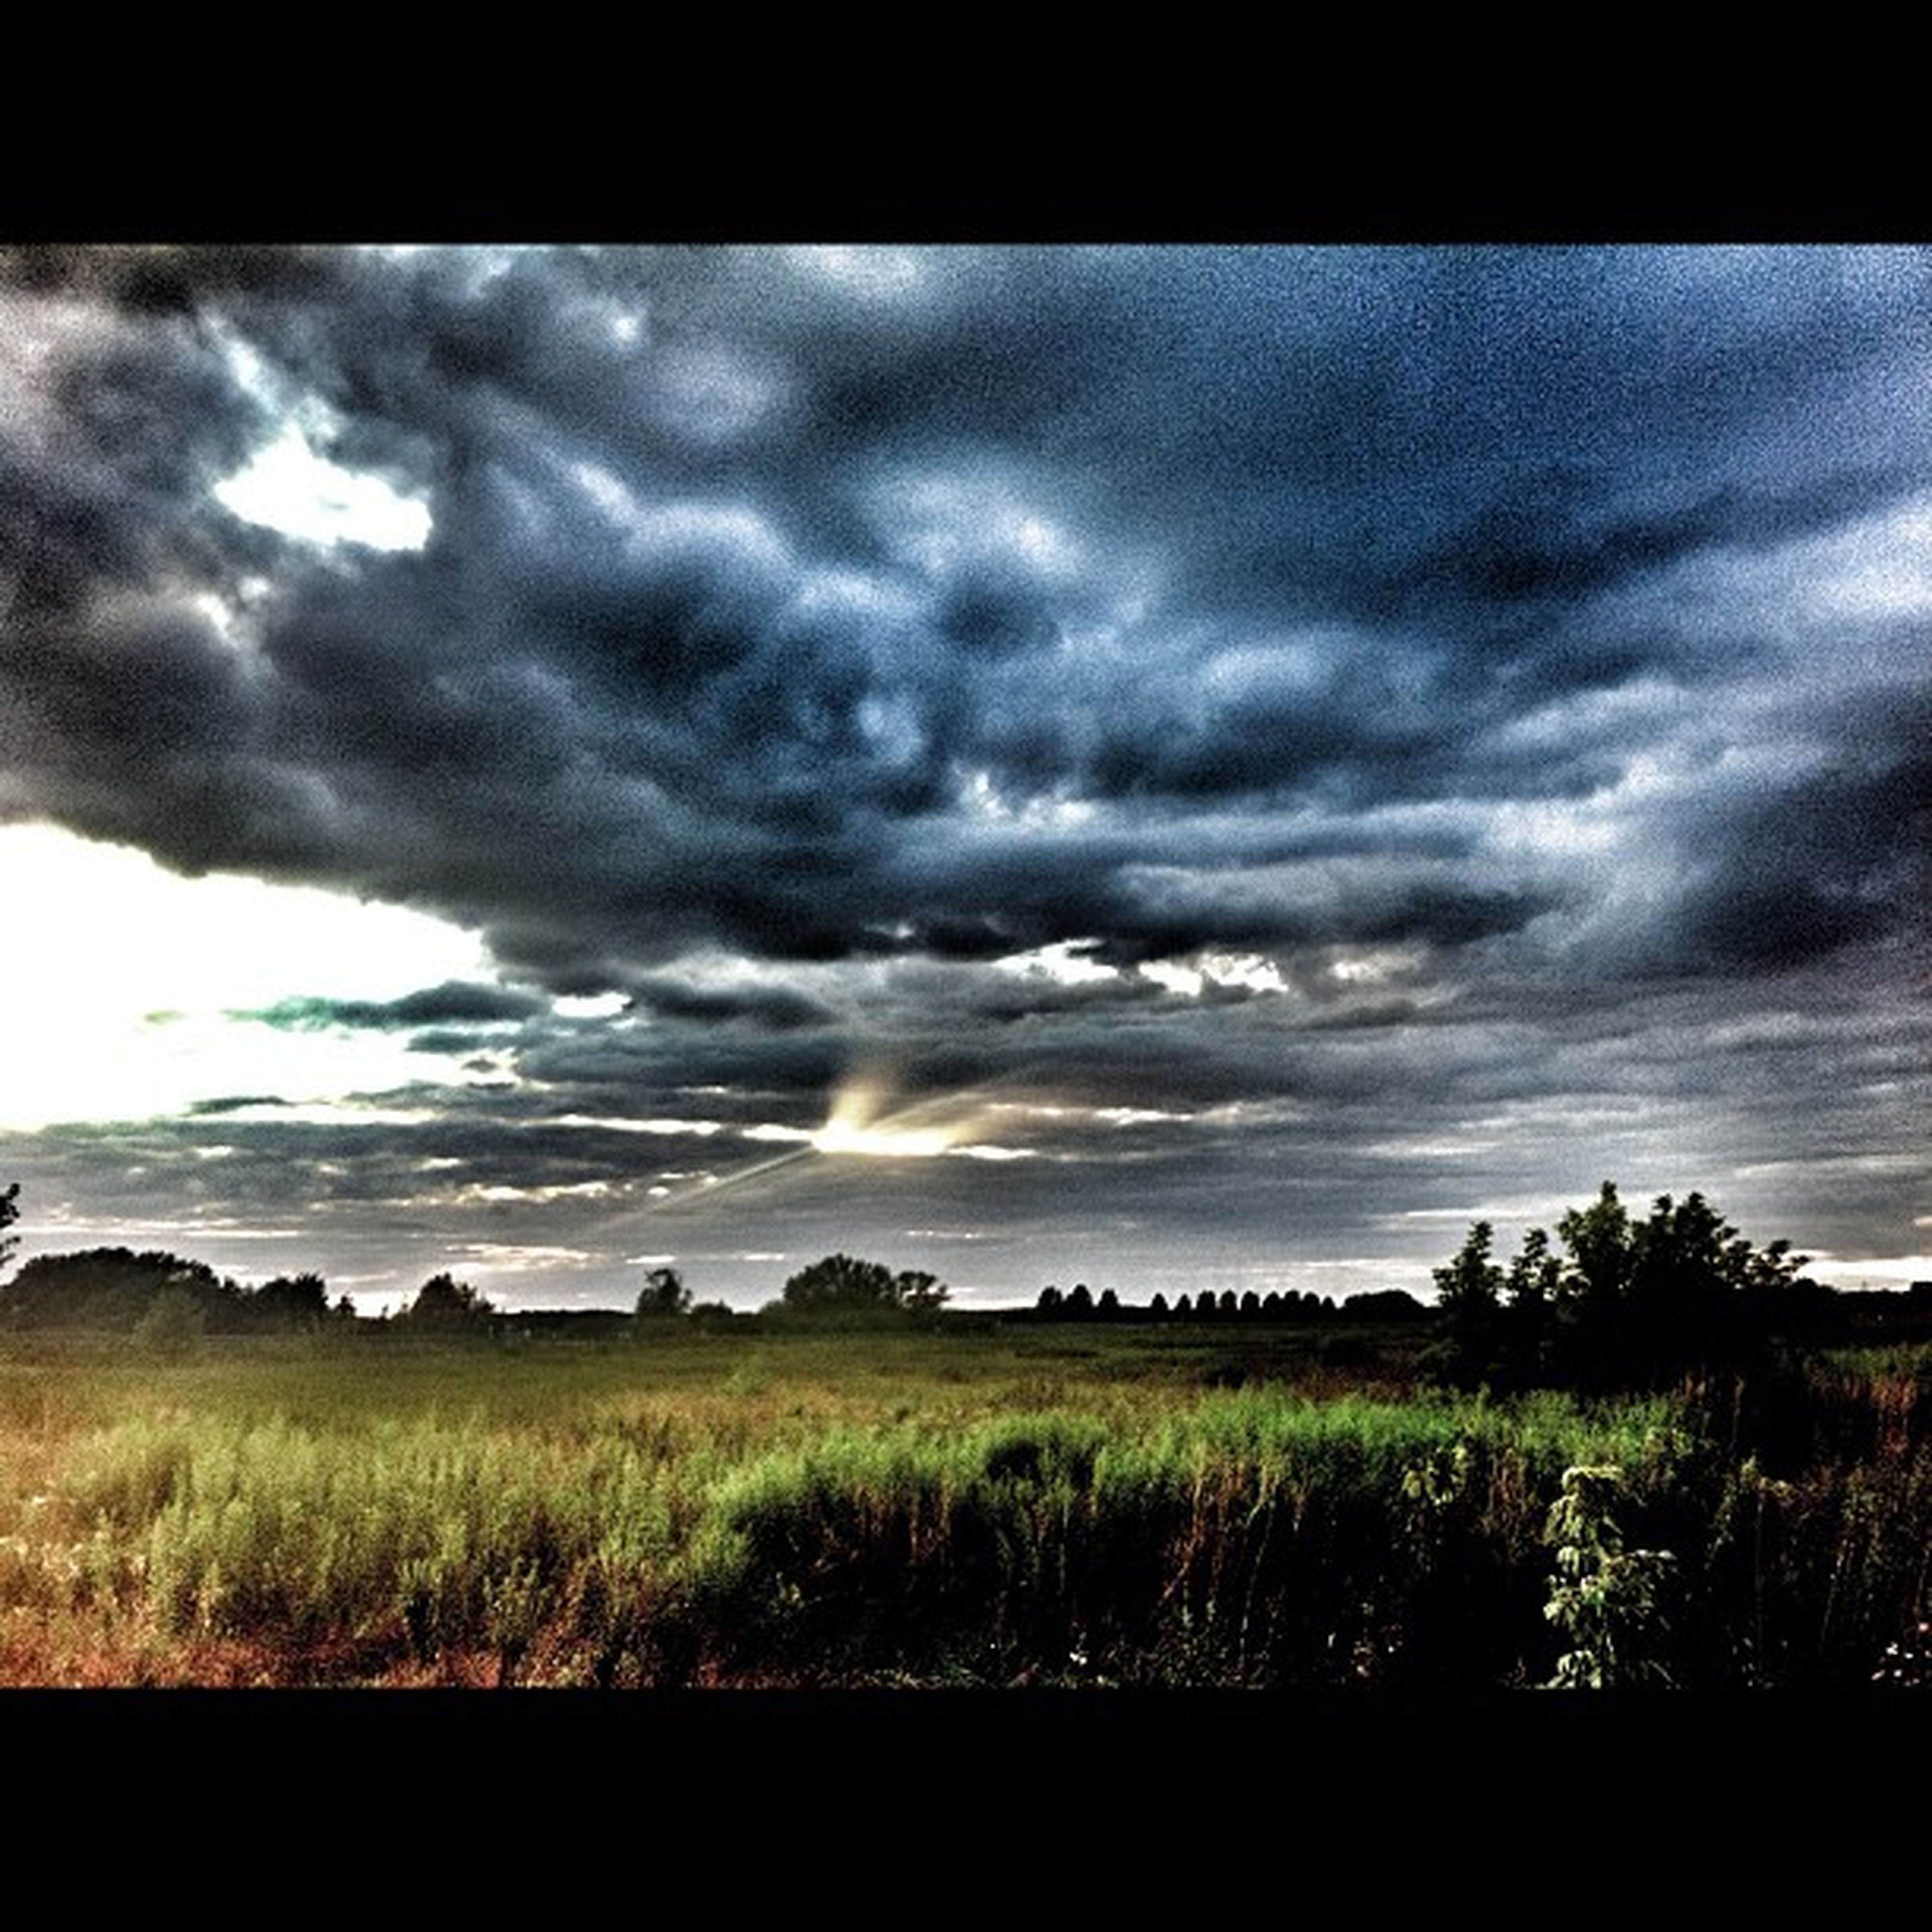 sky, cloud - sky, tranquil scene, cloudy, scenics, tranquility, landscape, transfer print, field, beauty in nature, sunset, grass, nature, cloud, auto post production filter, dramatic sky, overcast, weather, idyllic, sun